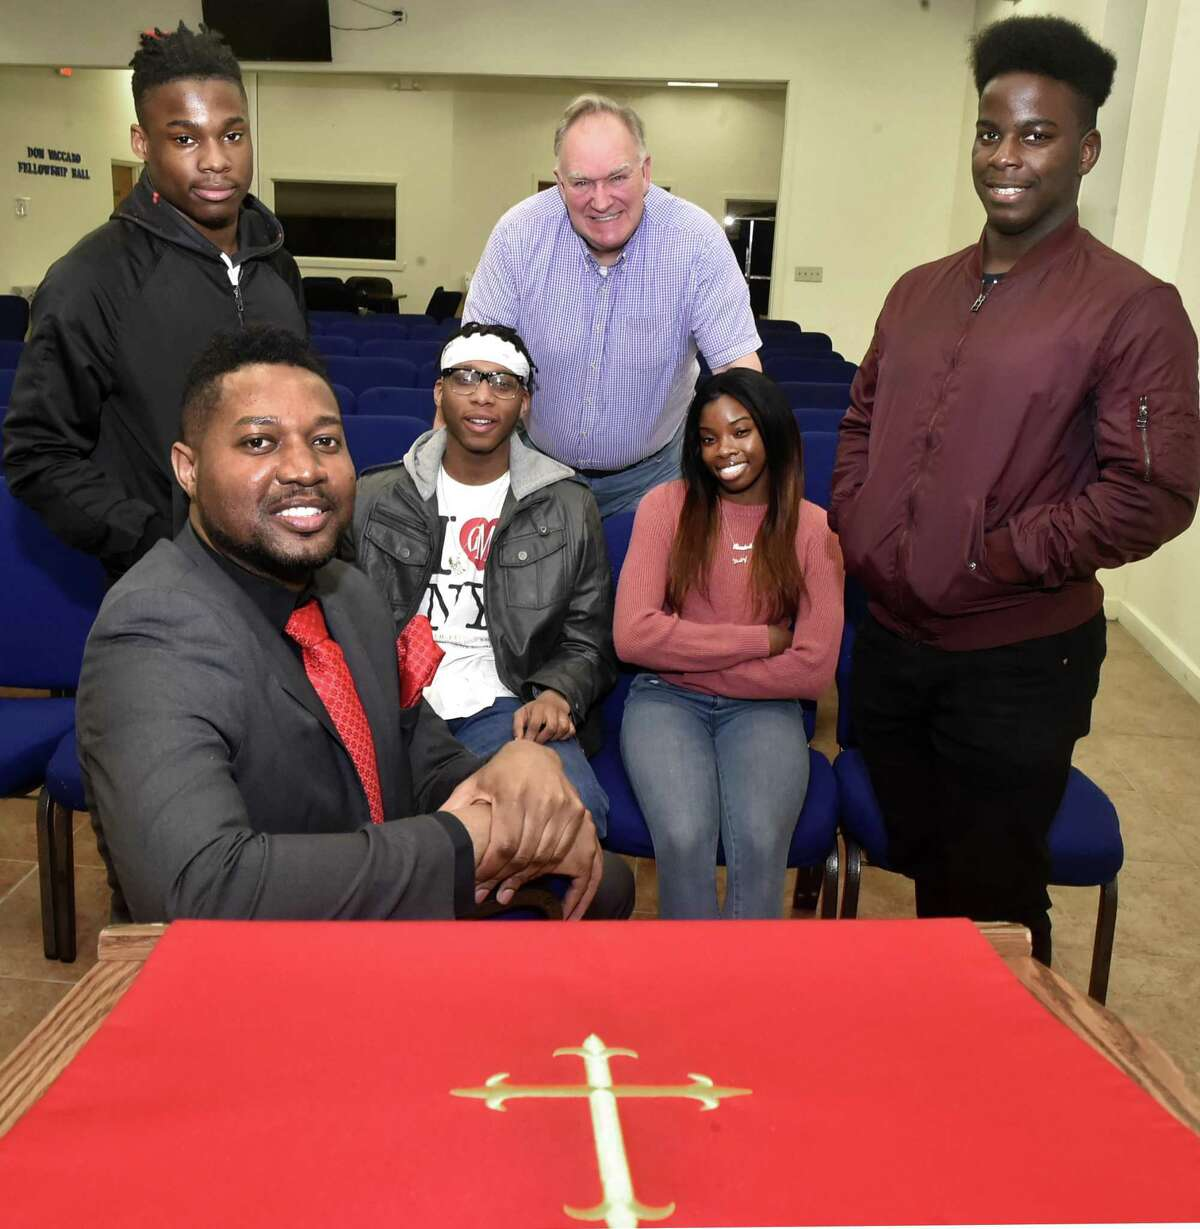 The Rev. Herron Gaston, associate director of admissions and recruitment at Yale Divinity School and senior pastor at Summerfield United Methodist Church in Bridgeport, sitting front, organized Youth with a Purpose, whose members include Kayno Williams, 18, of Bridgeport, standing left, Percy Smith, 19, of New Haven, sitting left, Randene Harris, 17, of New Haven, sitting right, and Thomas James, 19, of New Haven, standing right, and Richard Marquette, center, a New Haven attorney and Yale Divinity School graduate.